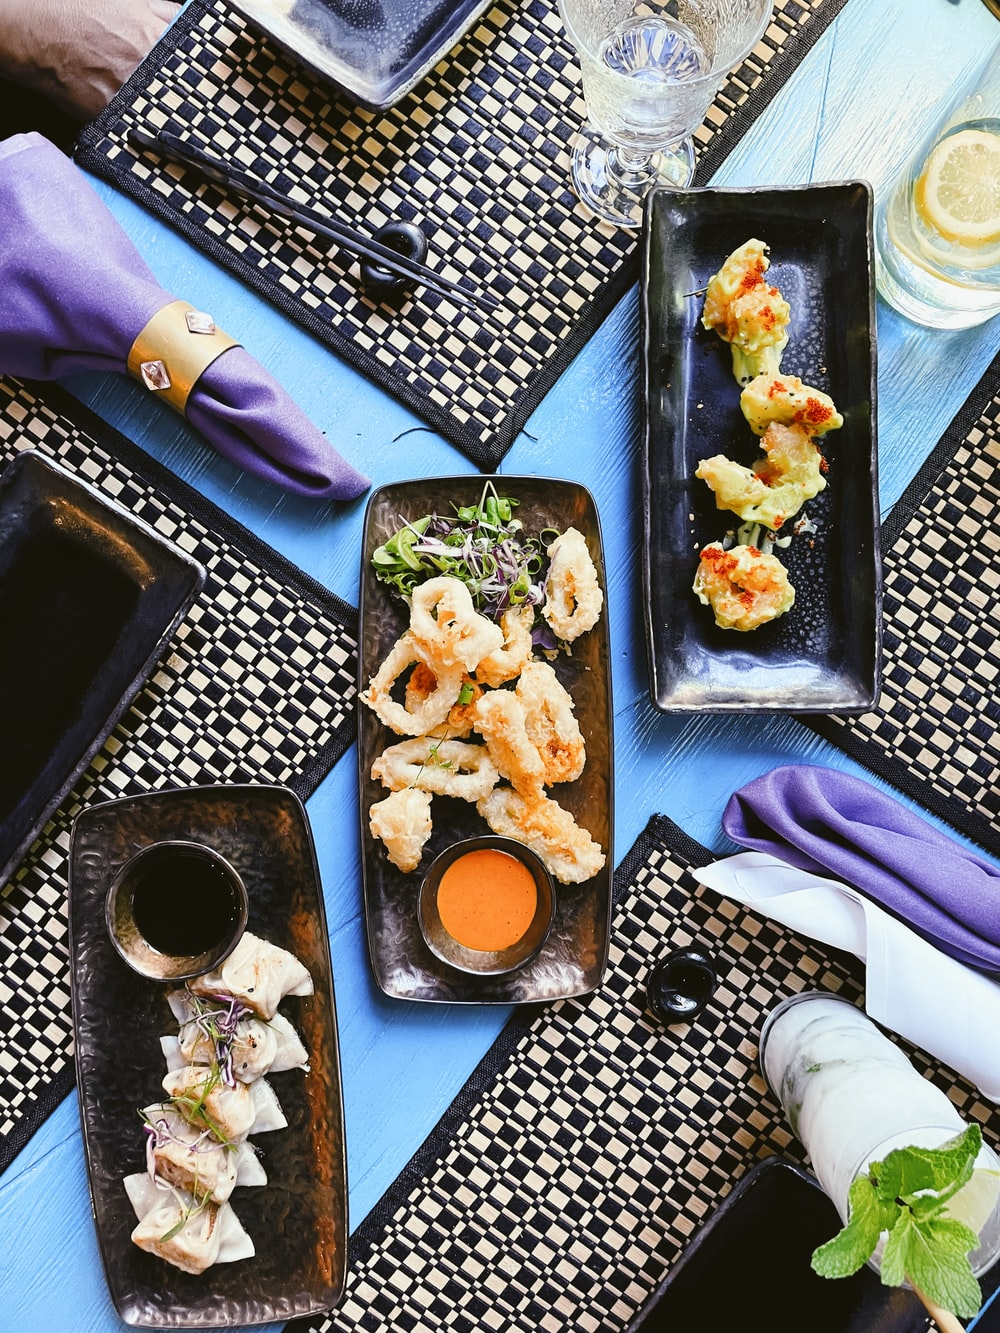 black ceramic tray with food on purple textile